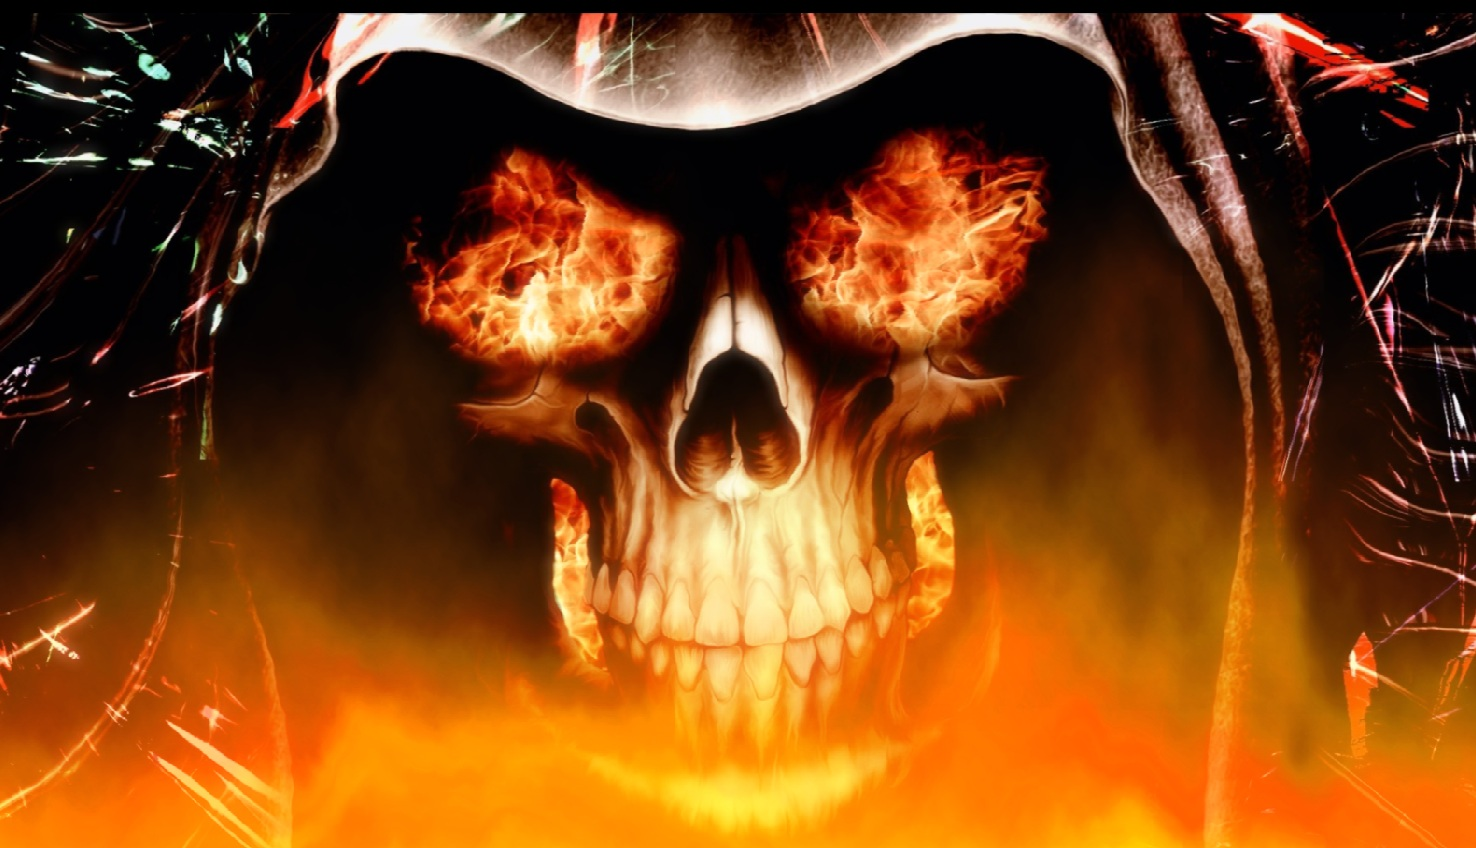 Free download Download Fire Skull Animated Wallpaper